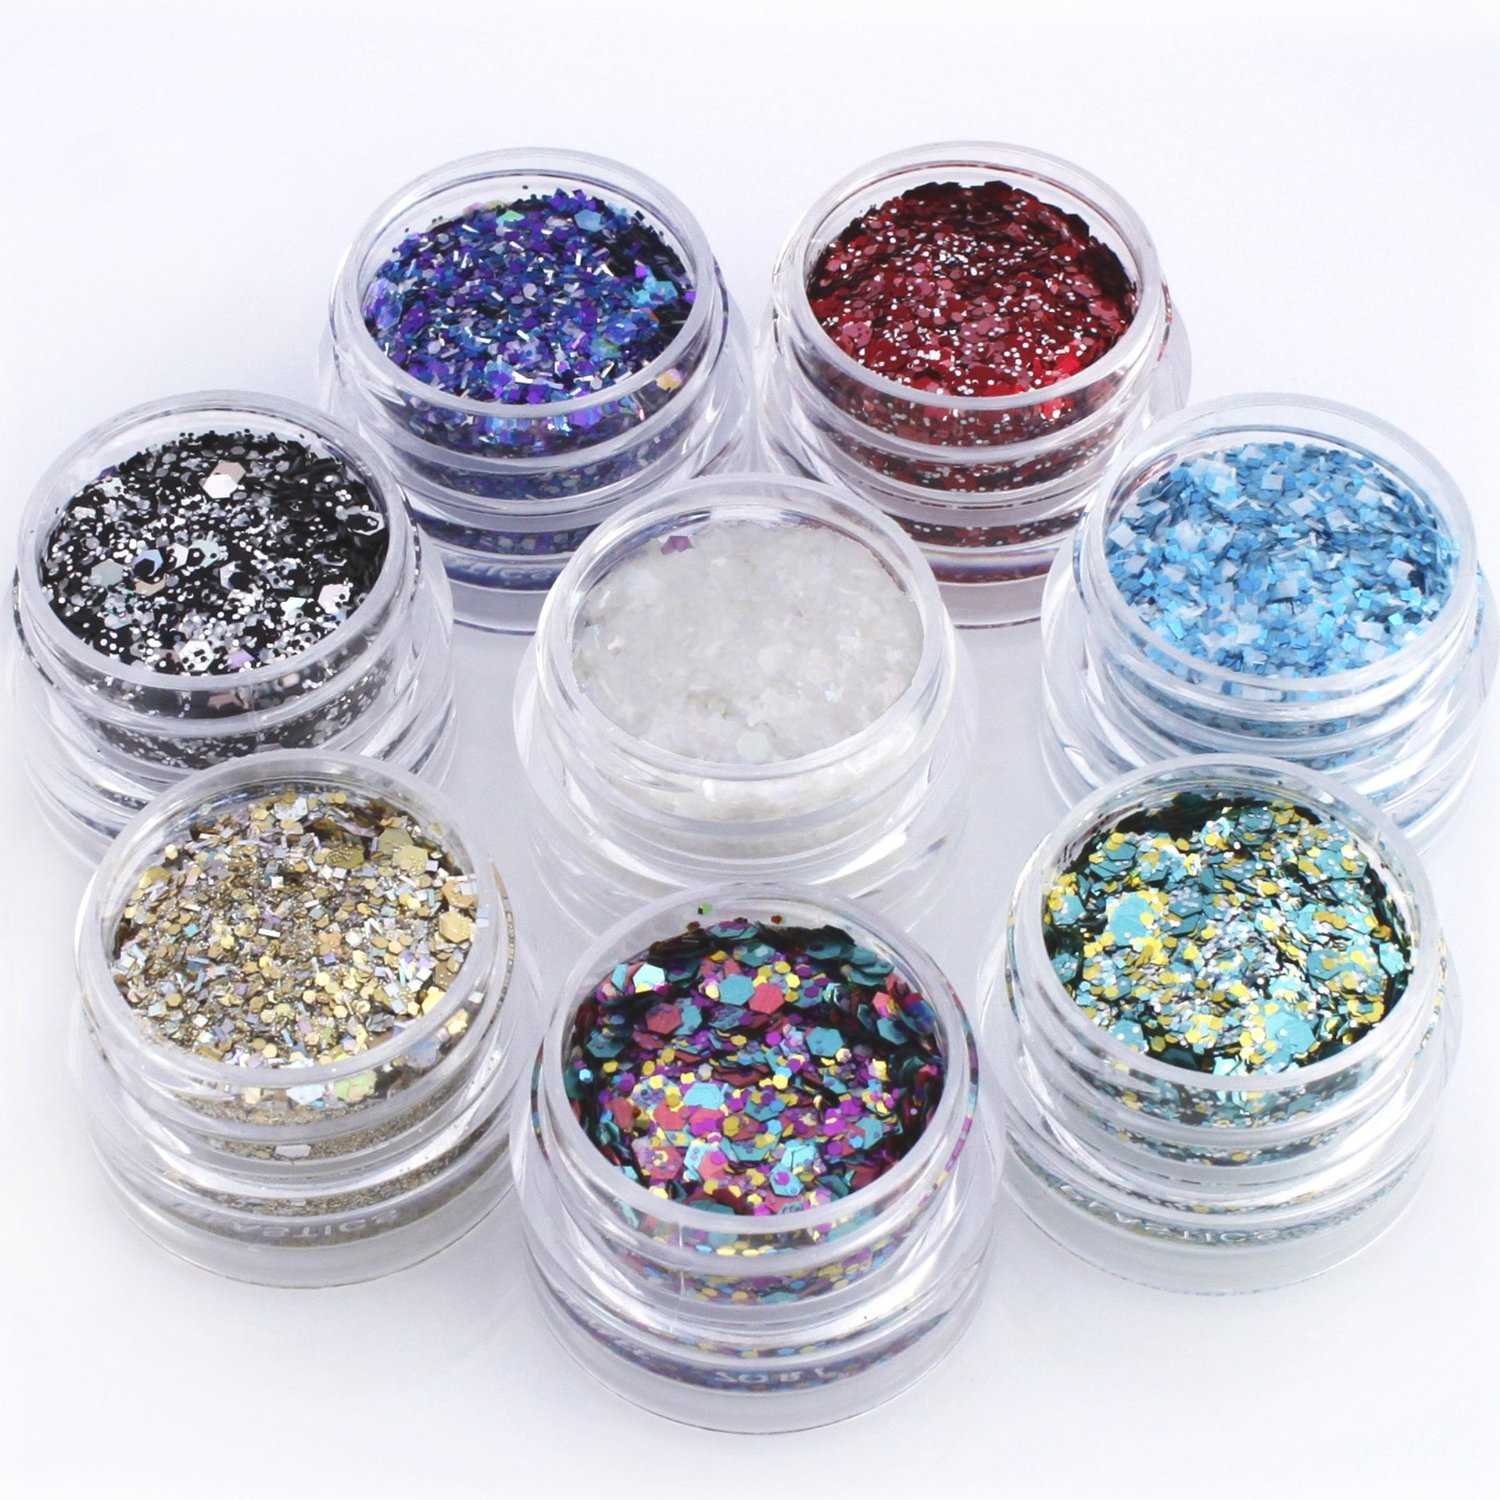 http://www.amazon.com/Glitter-Nail-Art-Kit-Guaranteed/dp/B00IOE4QC2/ref=sr_1_11?ie=UTF8&qid=1397678752&sr=8-11&keywords=glitties+glitter